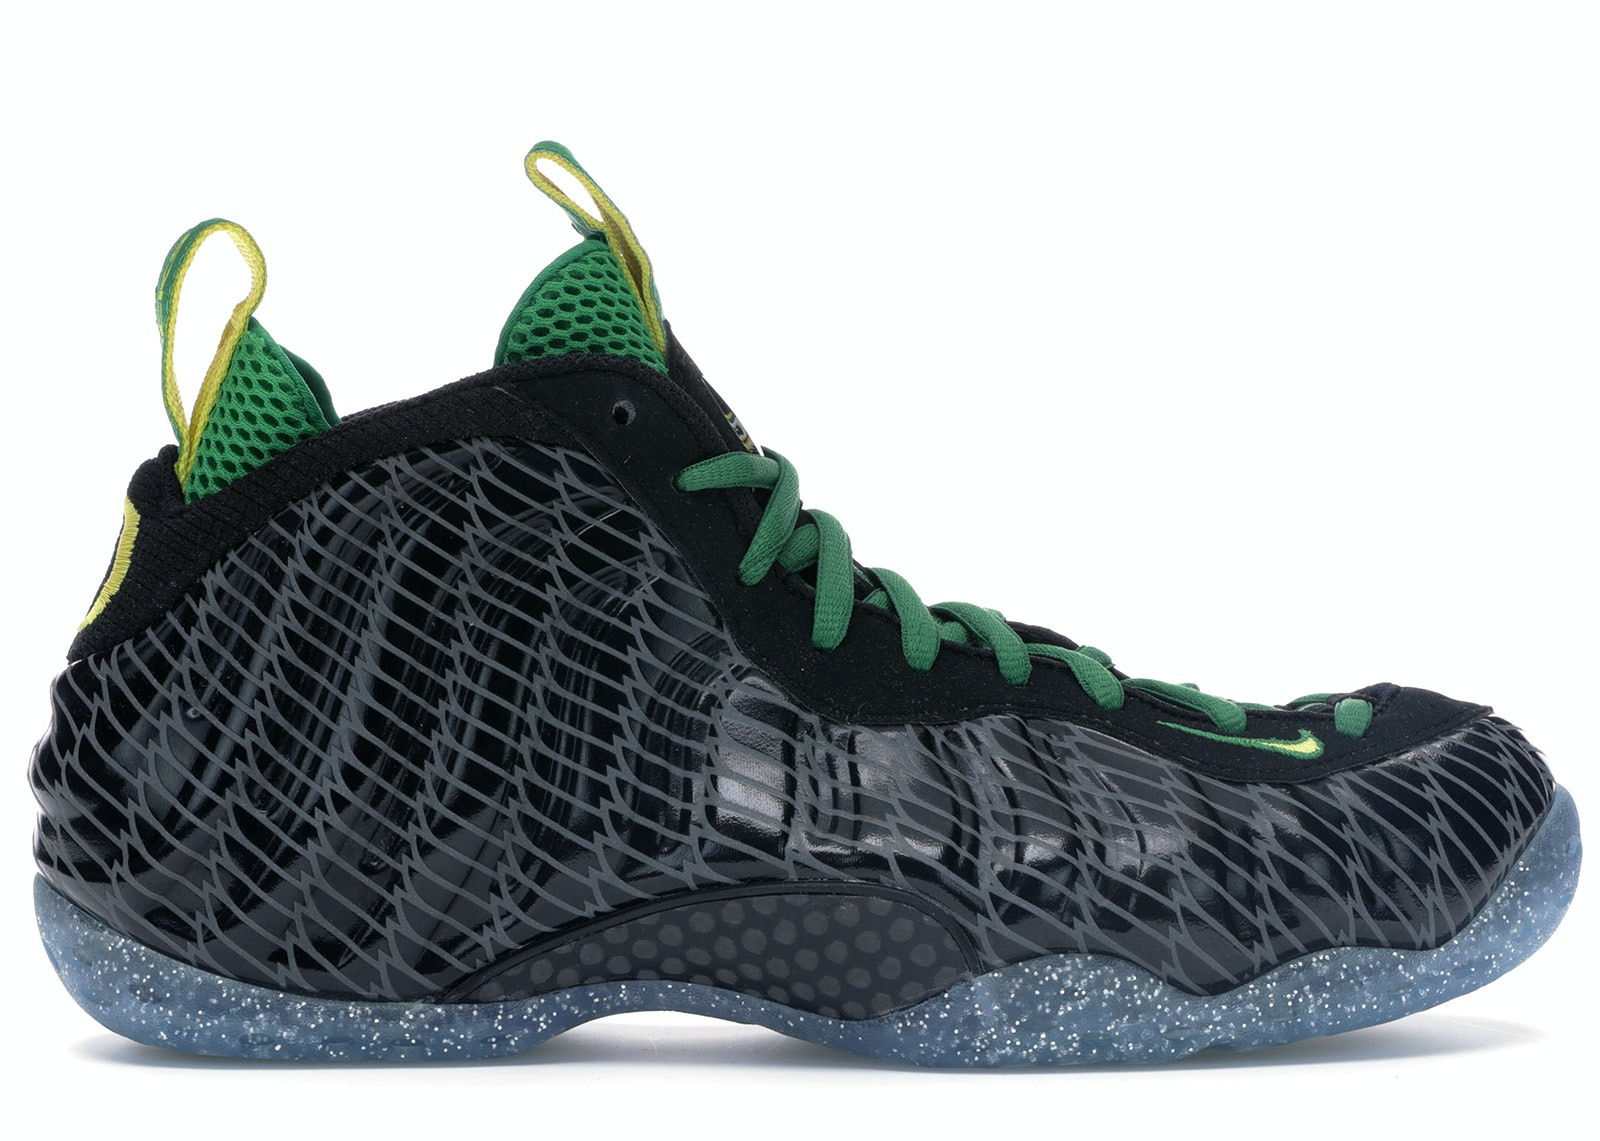 Newest Nike Air Foamposite One PRM Abalone Black ...